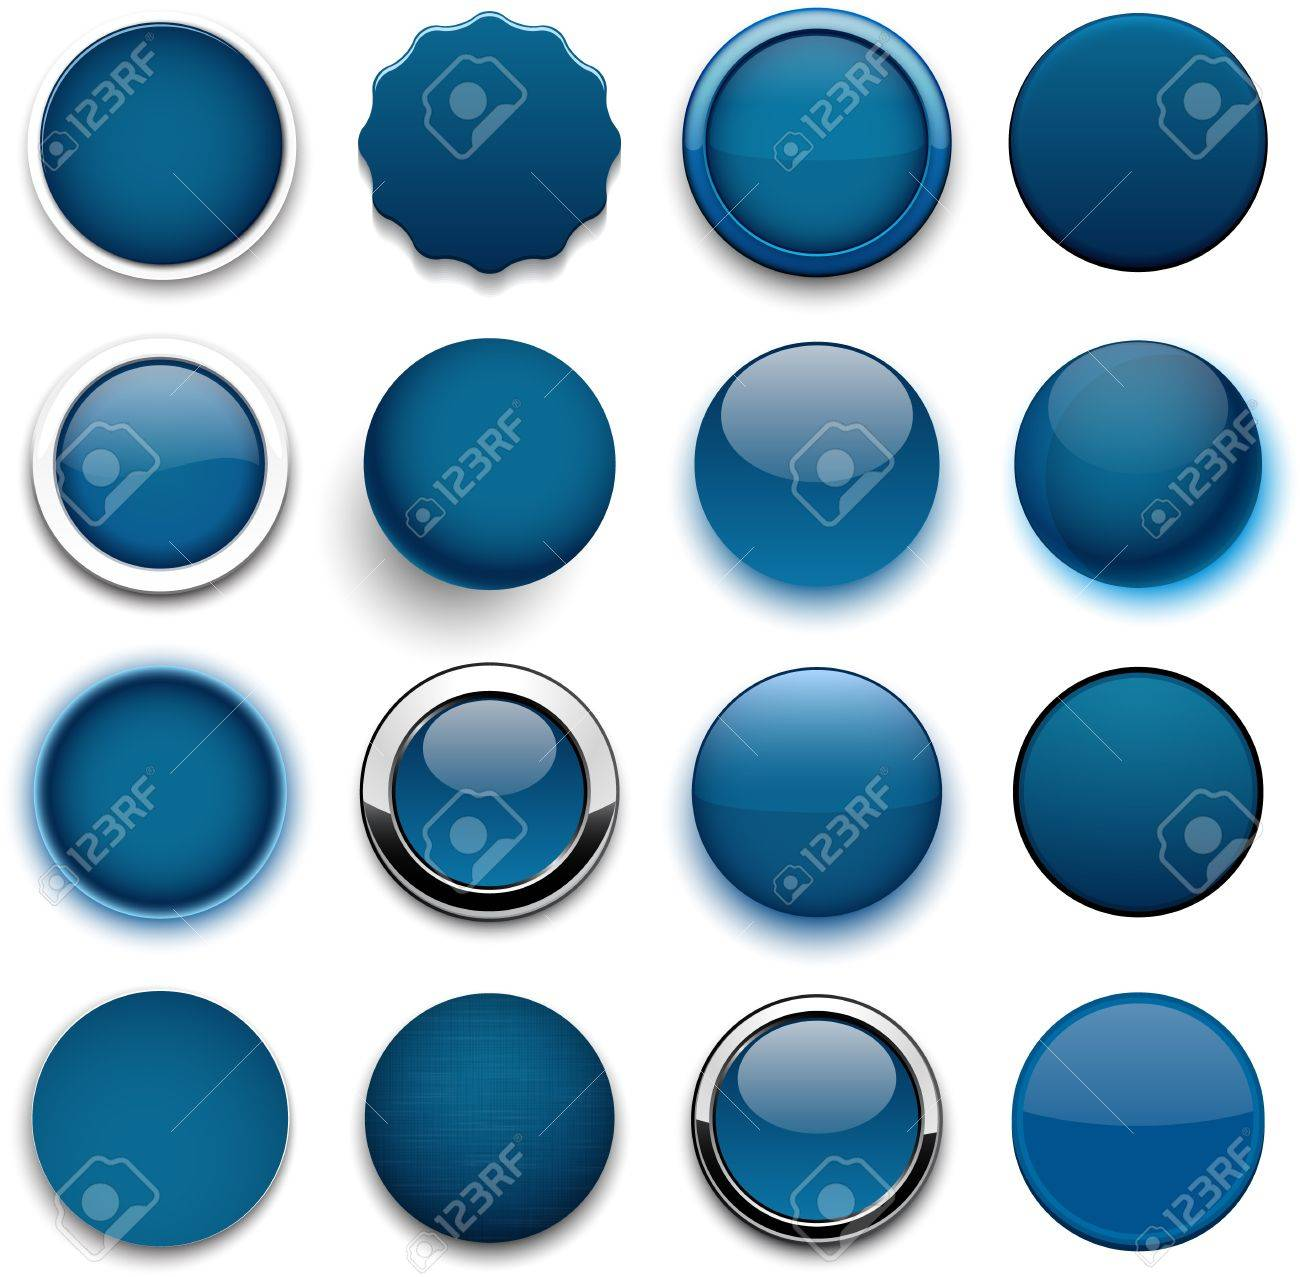 Set of blank dark blue round buttons for website or app. Stock Vector - 20840883